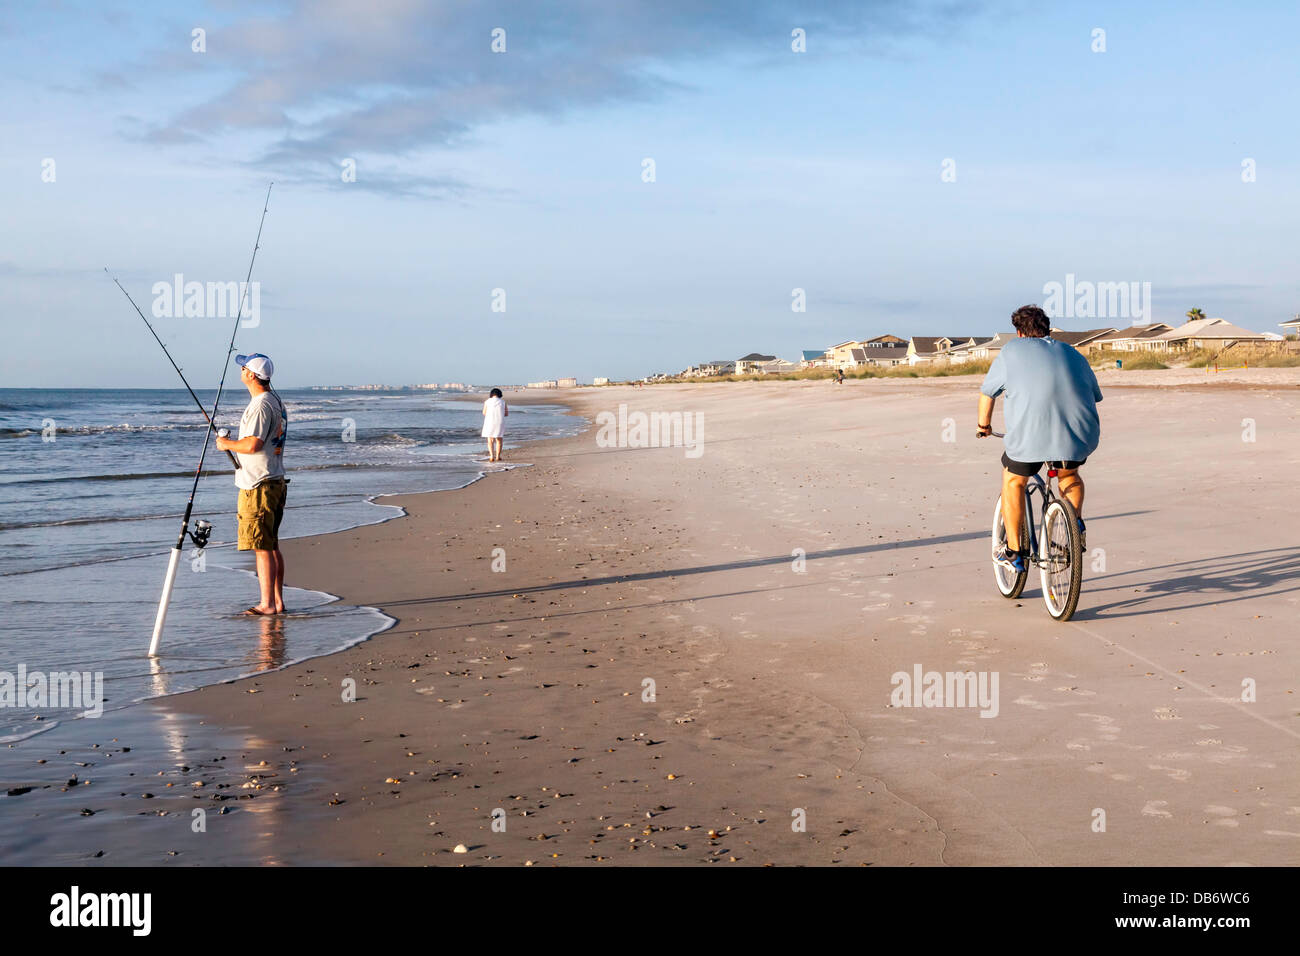 man-riding-bicycle-while-sea-angler-with